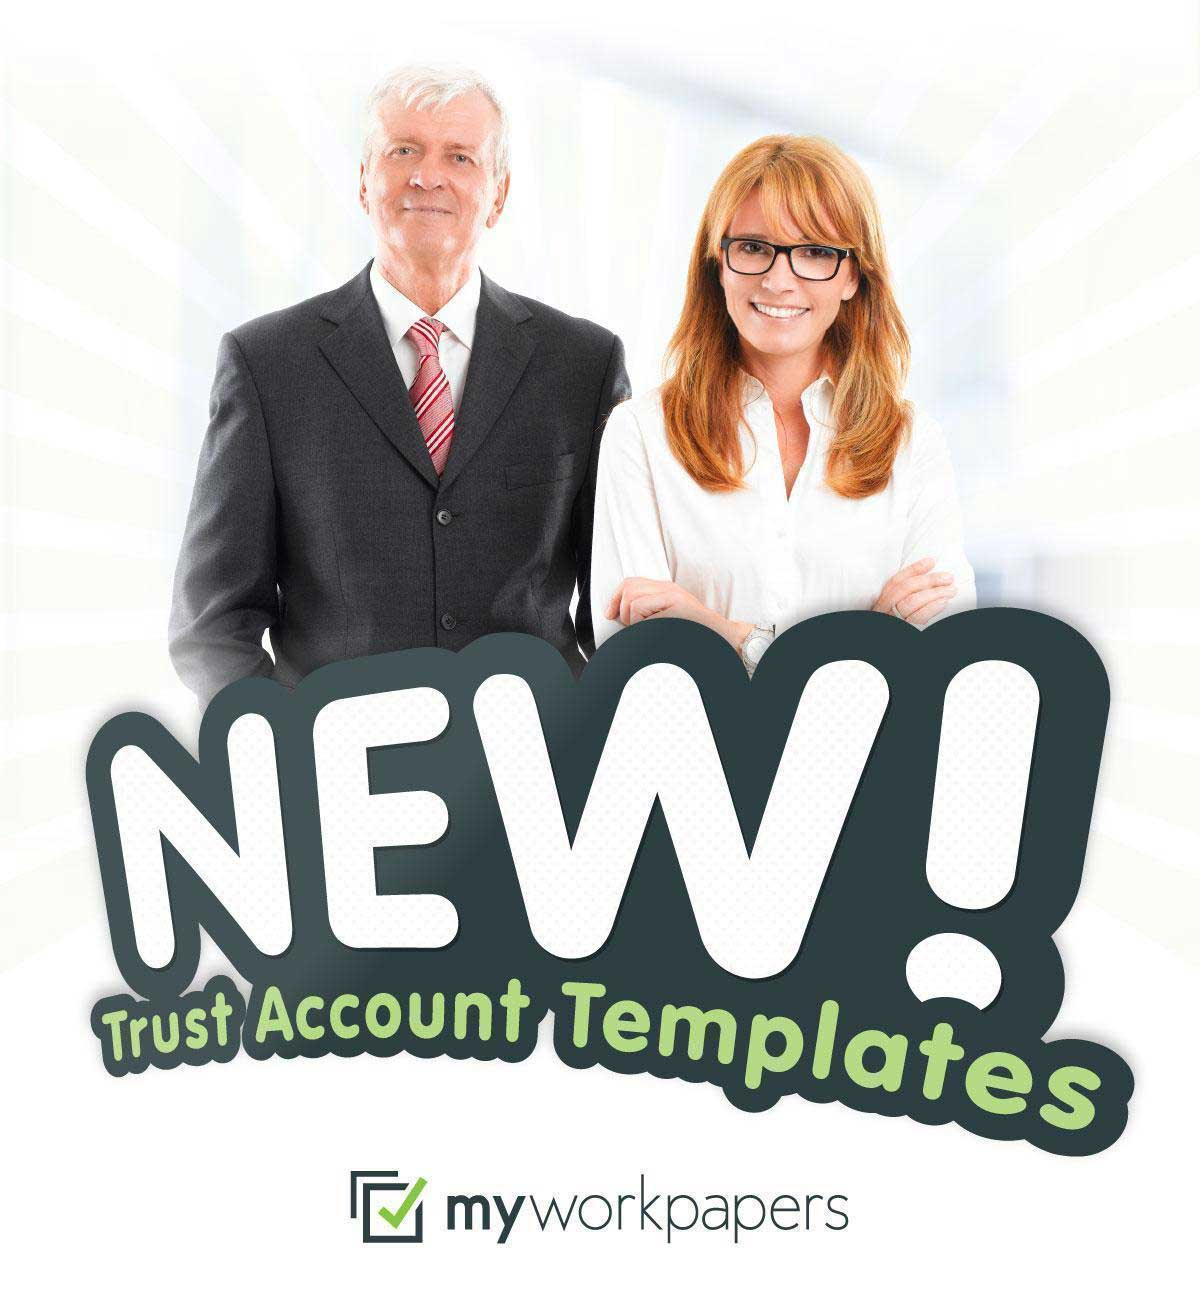 trust account templates